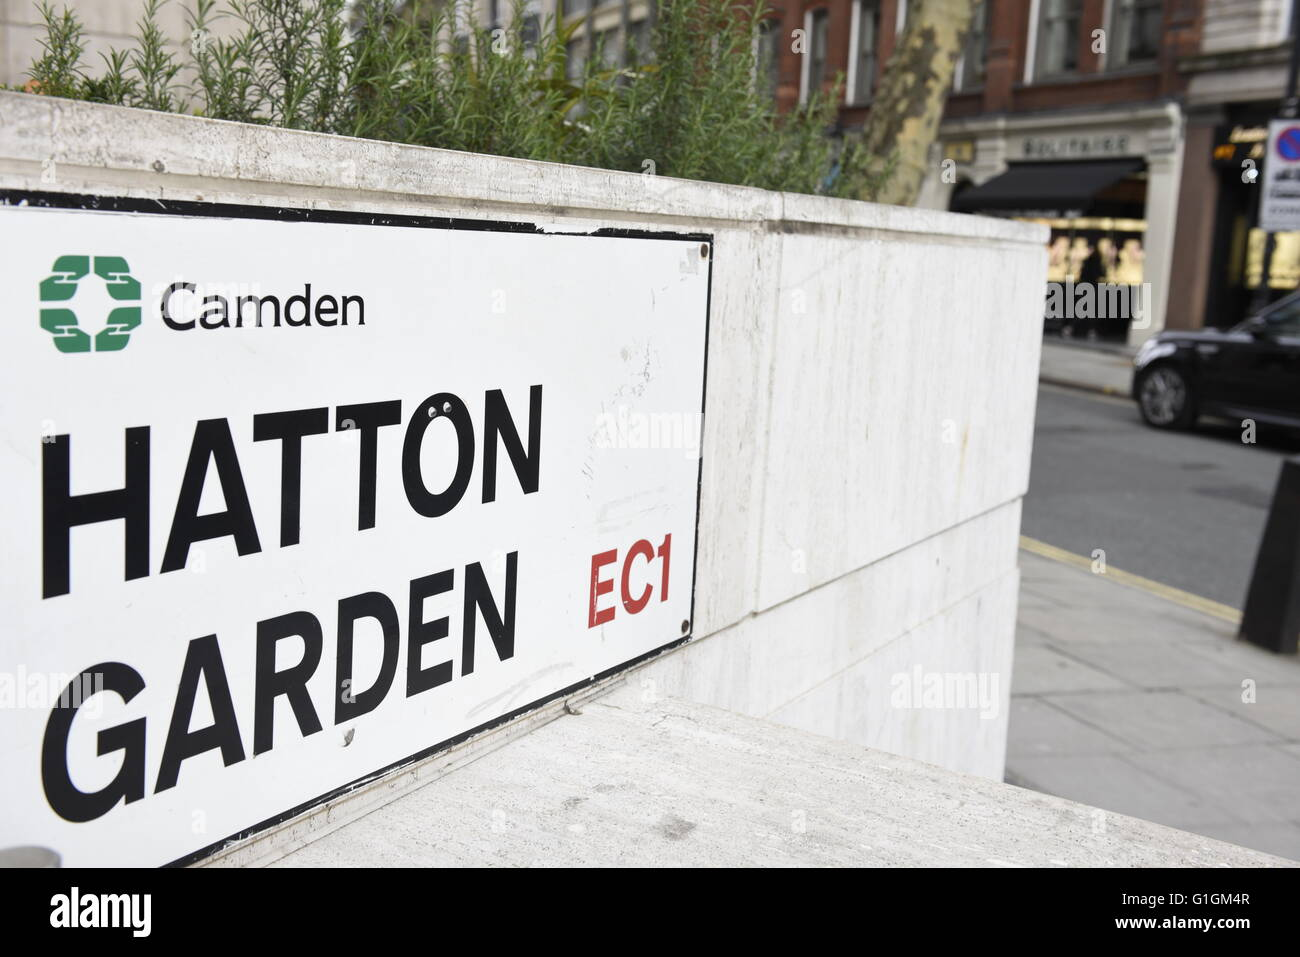 Hatton Garden road sign, London Borough of Camden, London, UK. Hatton Garden is most famous for being London's jewellery Stock Photo